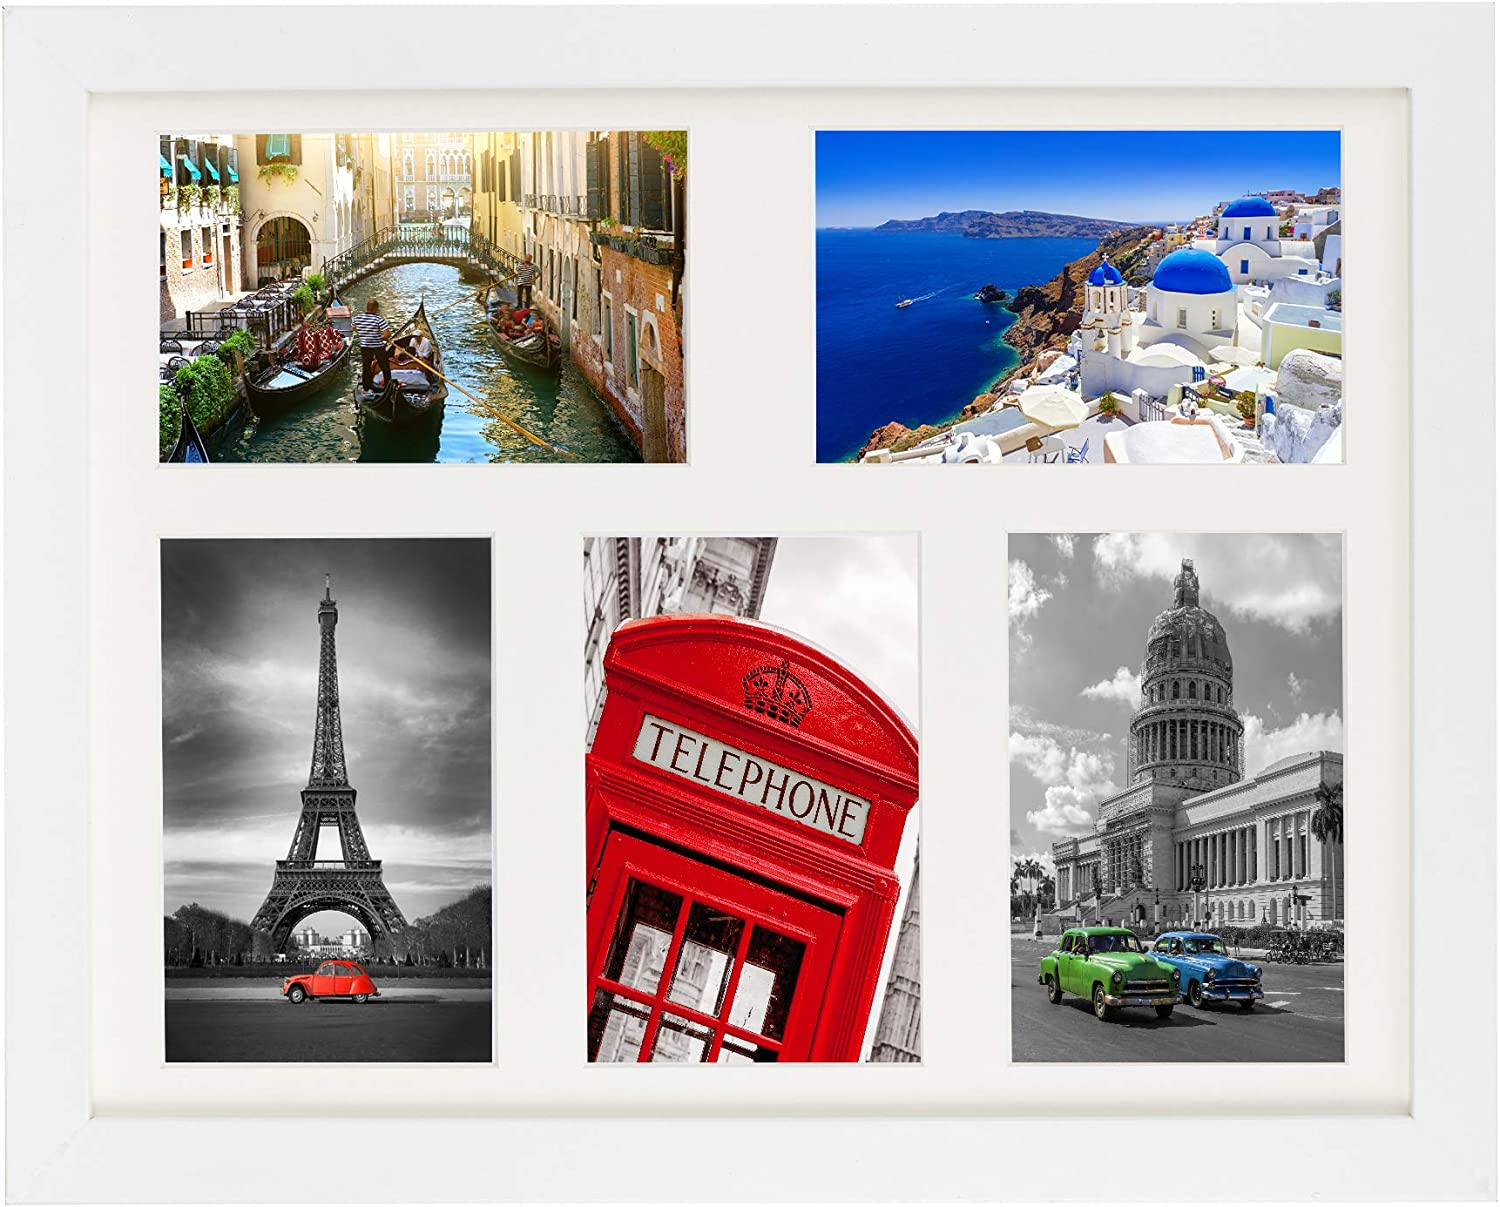 Collage Photo Frames Multi Aperture Picture Frames Fits 9 7 x 5 Inches Photos White Mount Mixed Landscape or Portrait Photo Framed